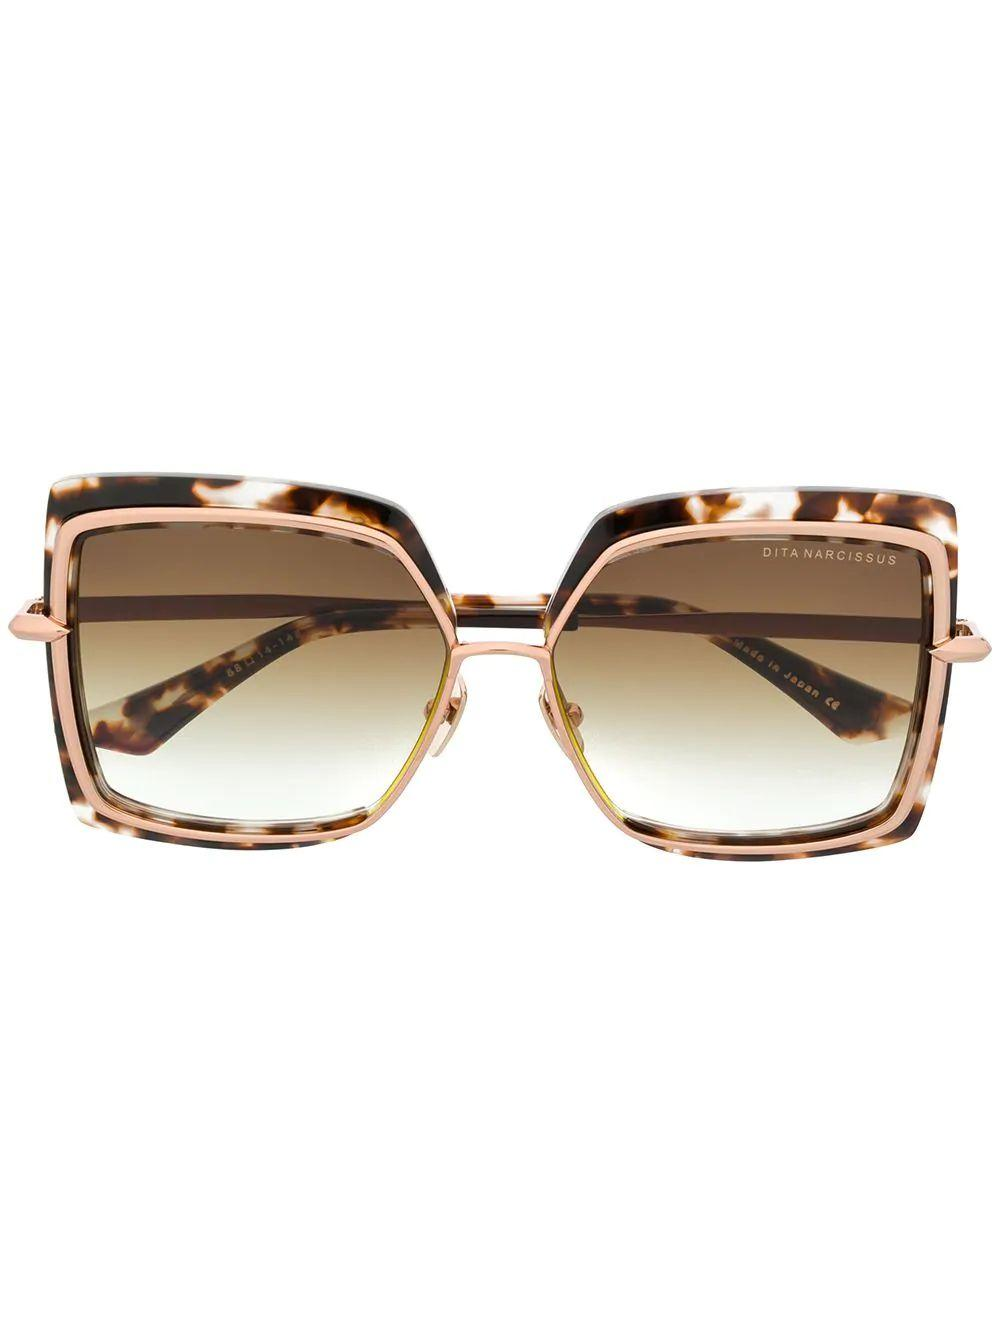 Narcissus Square Tort Rose Gold Item # DTS503-58-02